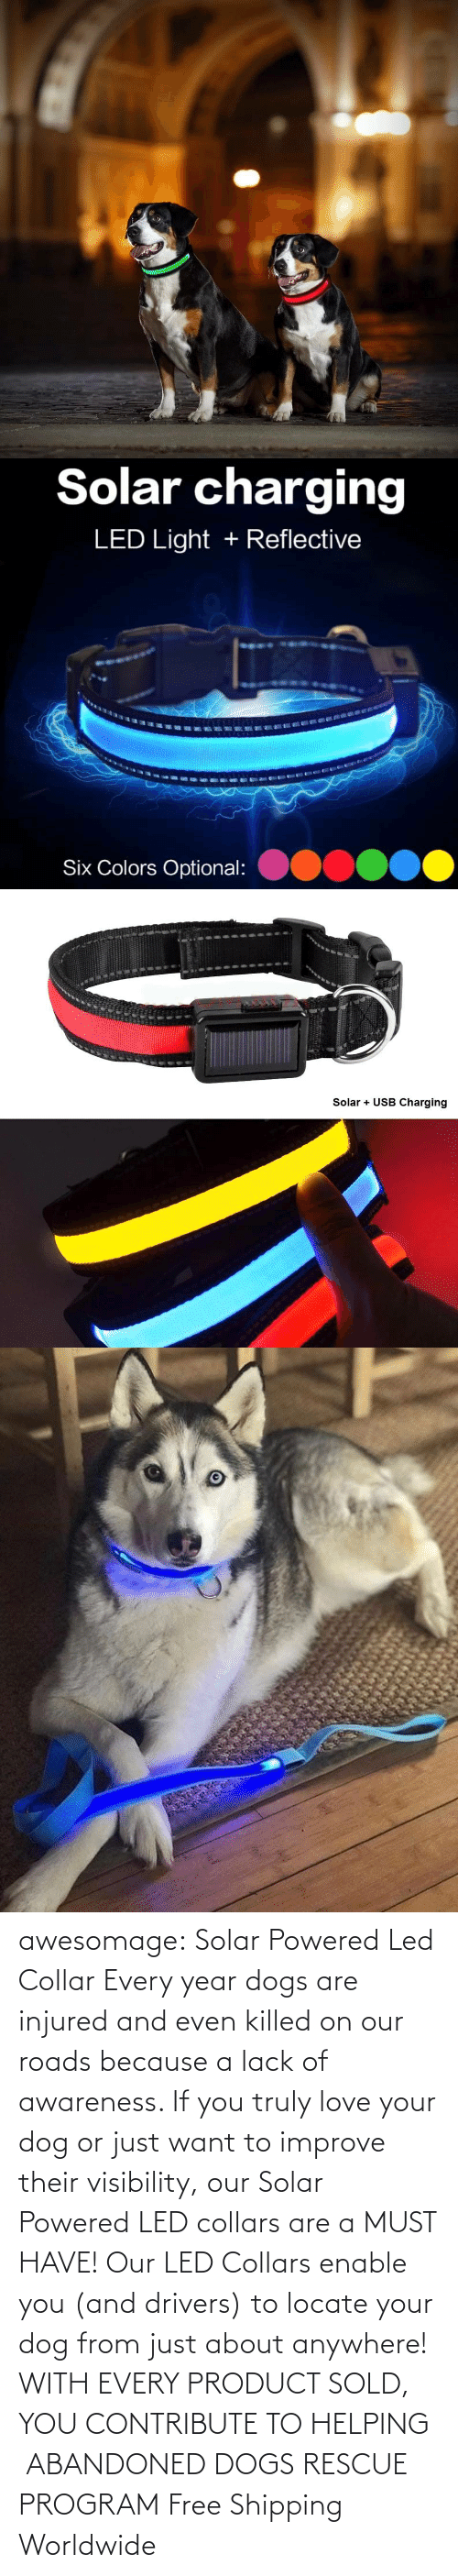 Free: awesomage: Solar Powered Led Collar   Every year dogs are injured and even killed on our roads because a lack of awareness. If you truly love your dog or just want to improve their visibility, our Solar Powered LED collars are a MUST HAVE!   Our LED Collars enable you (and drivers) to locate your dog from just about anywhere!     WITH EVERY PRODUCT SOLD, YOU CONTRIBUTE TO HELPING  ABANDONED DOGS RESCUE PROGRAM     Free Shipping Worldwide